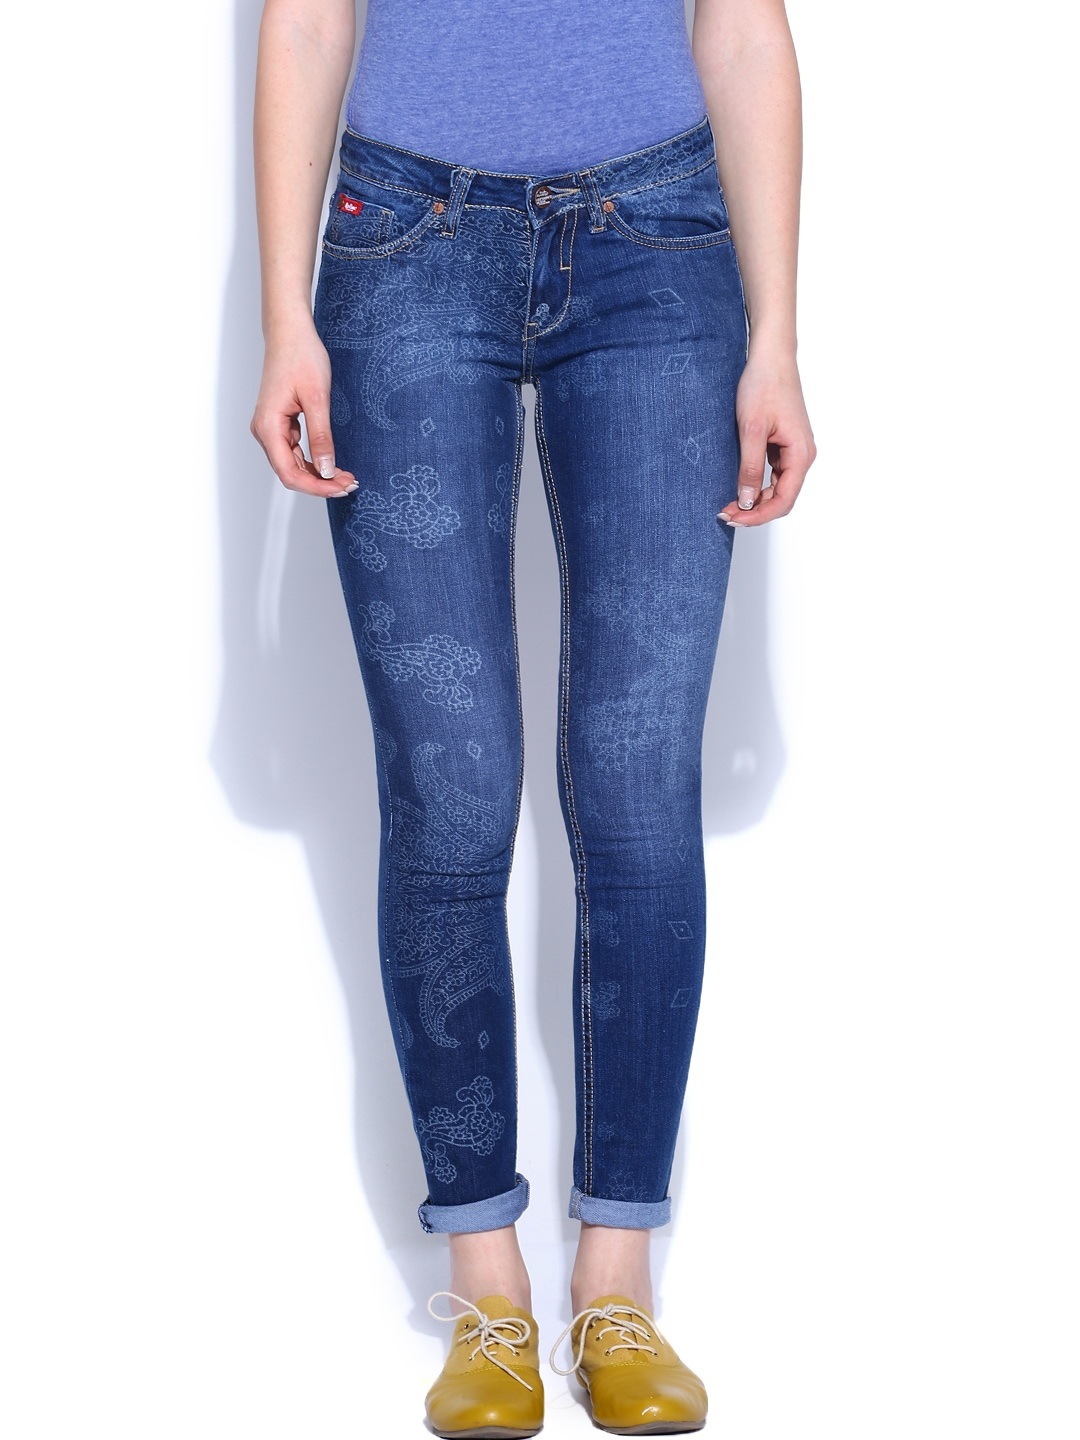 lee cooper jeans for women - photo #9